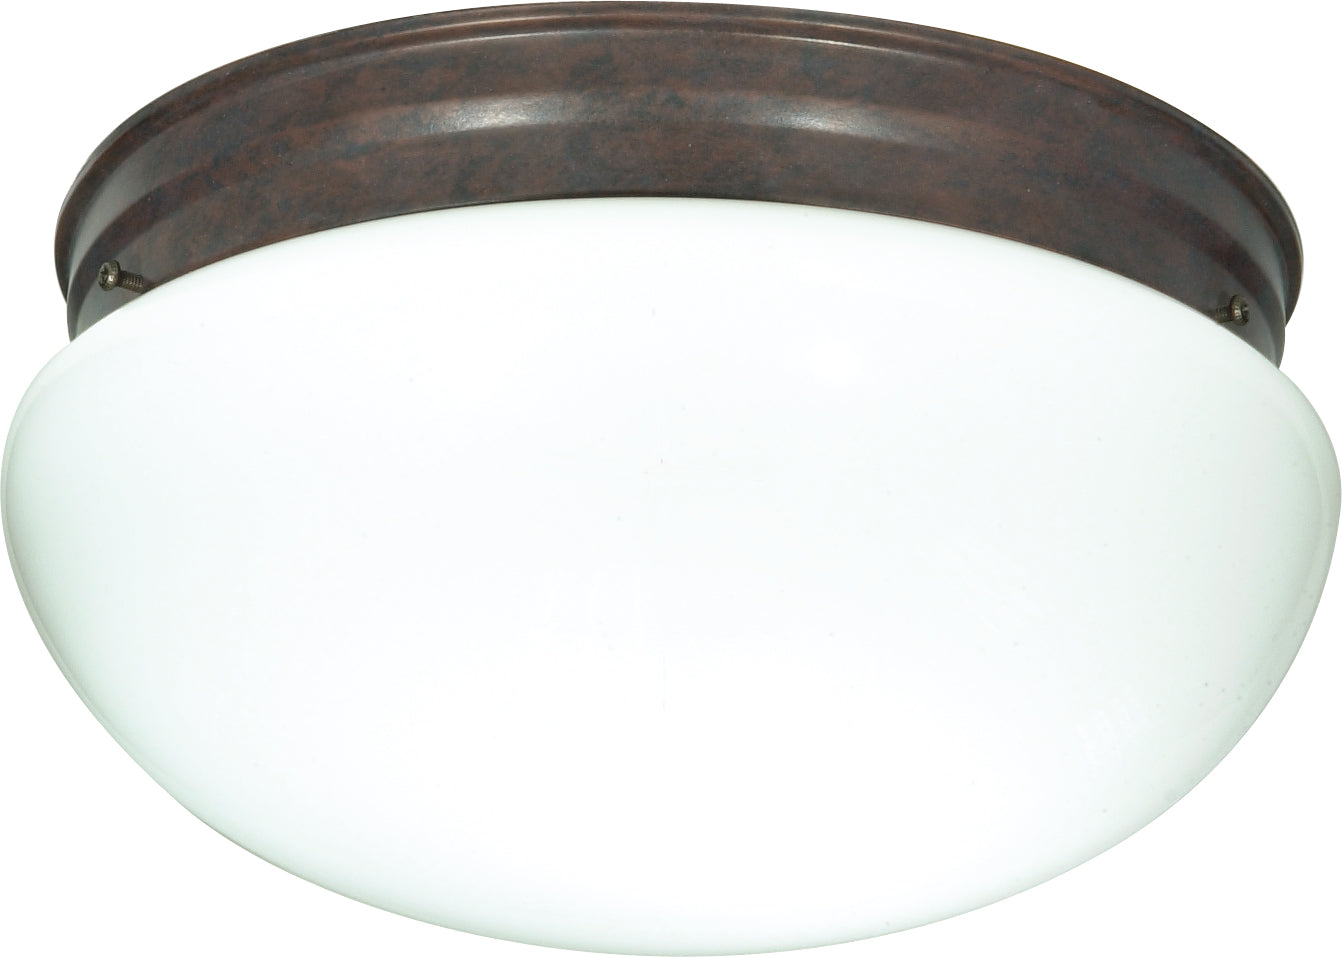 "2-Light 12"" Flush Mounted Close-to-Ceiling Light Fixture in Old Bronze Finish"